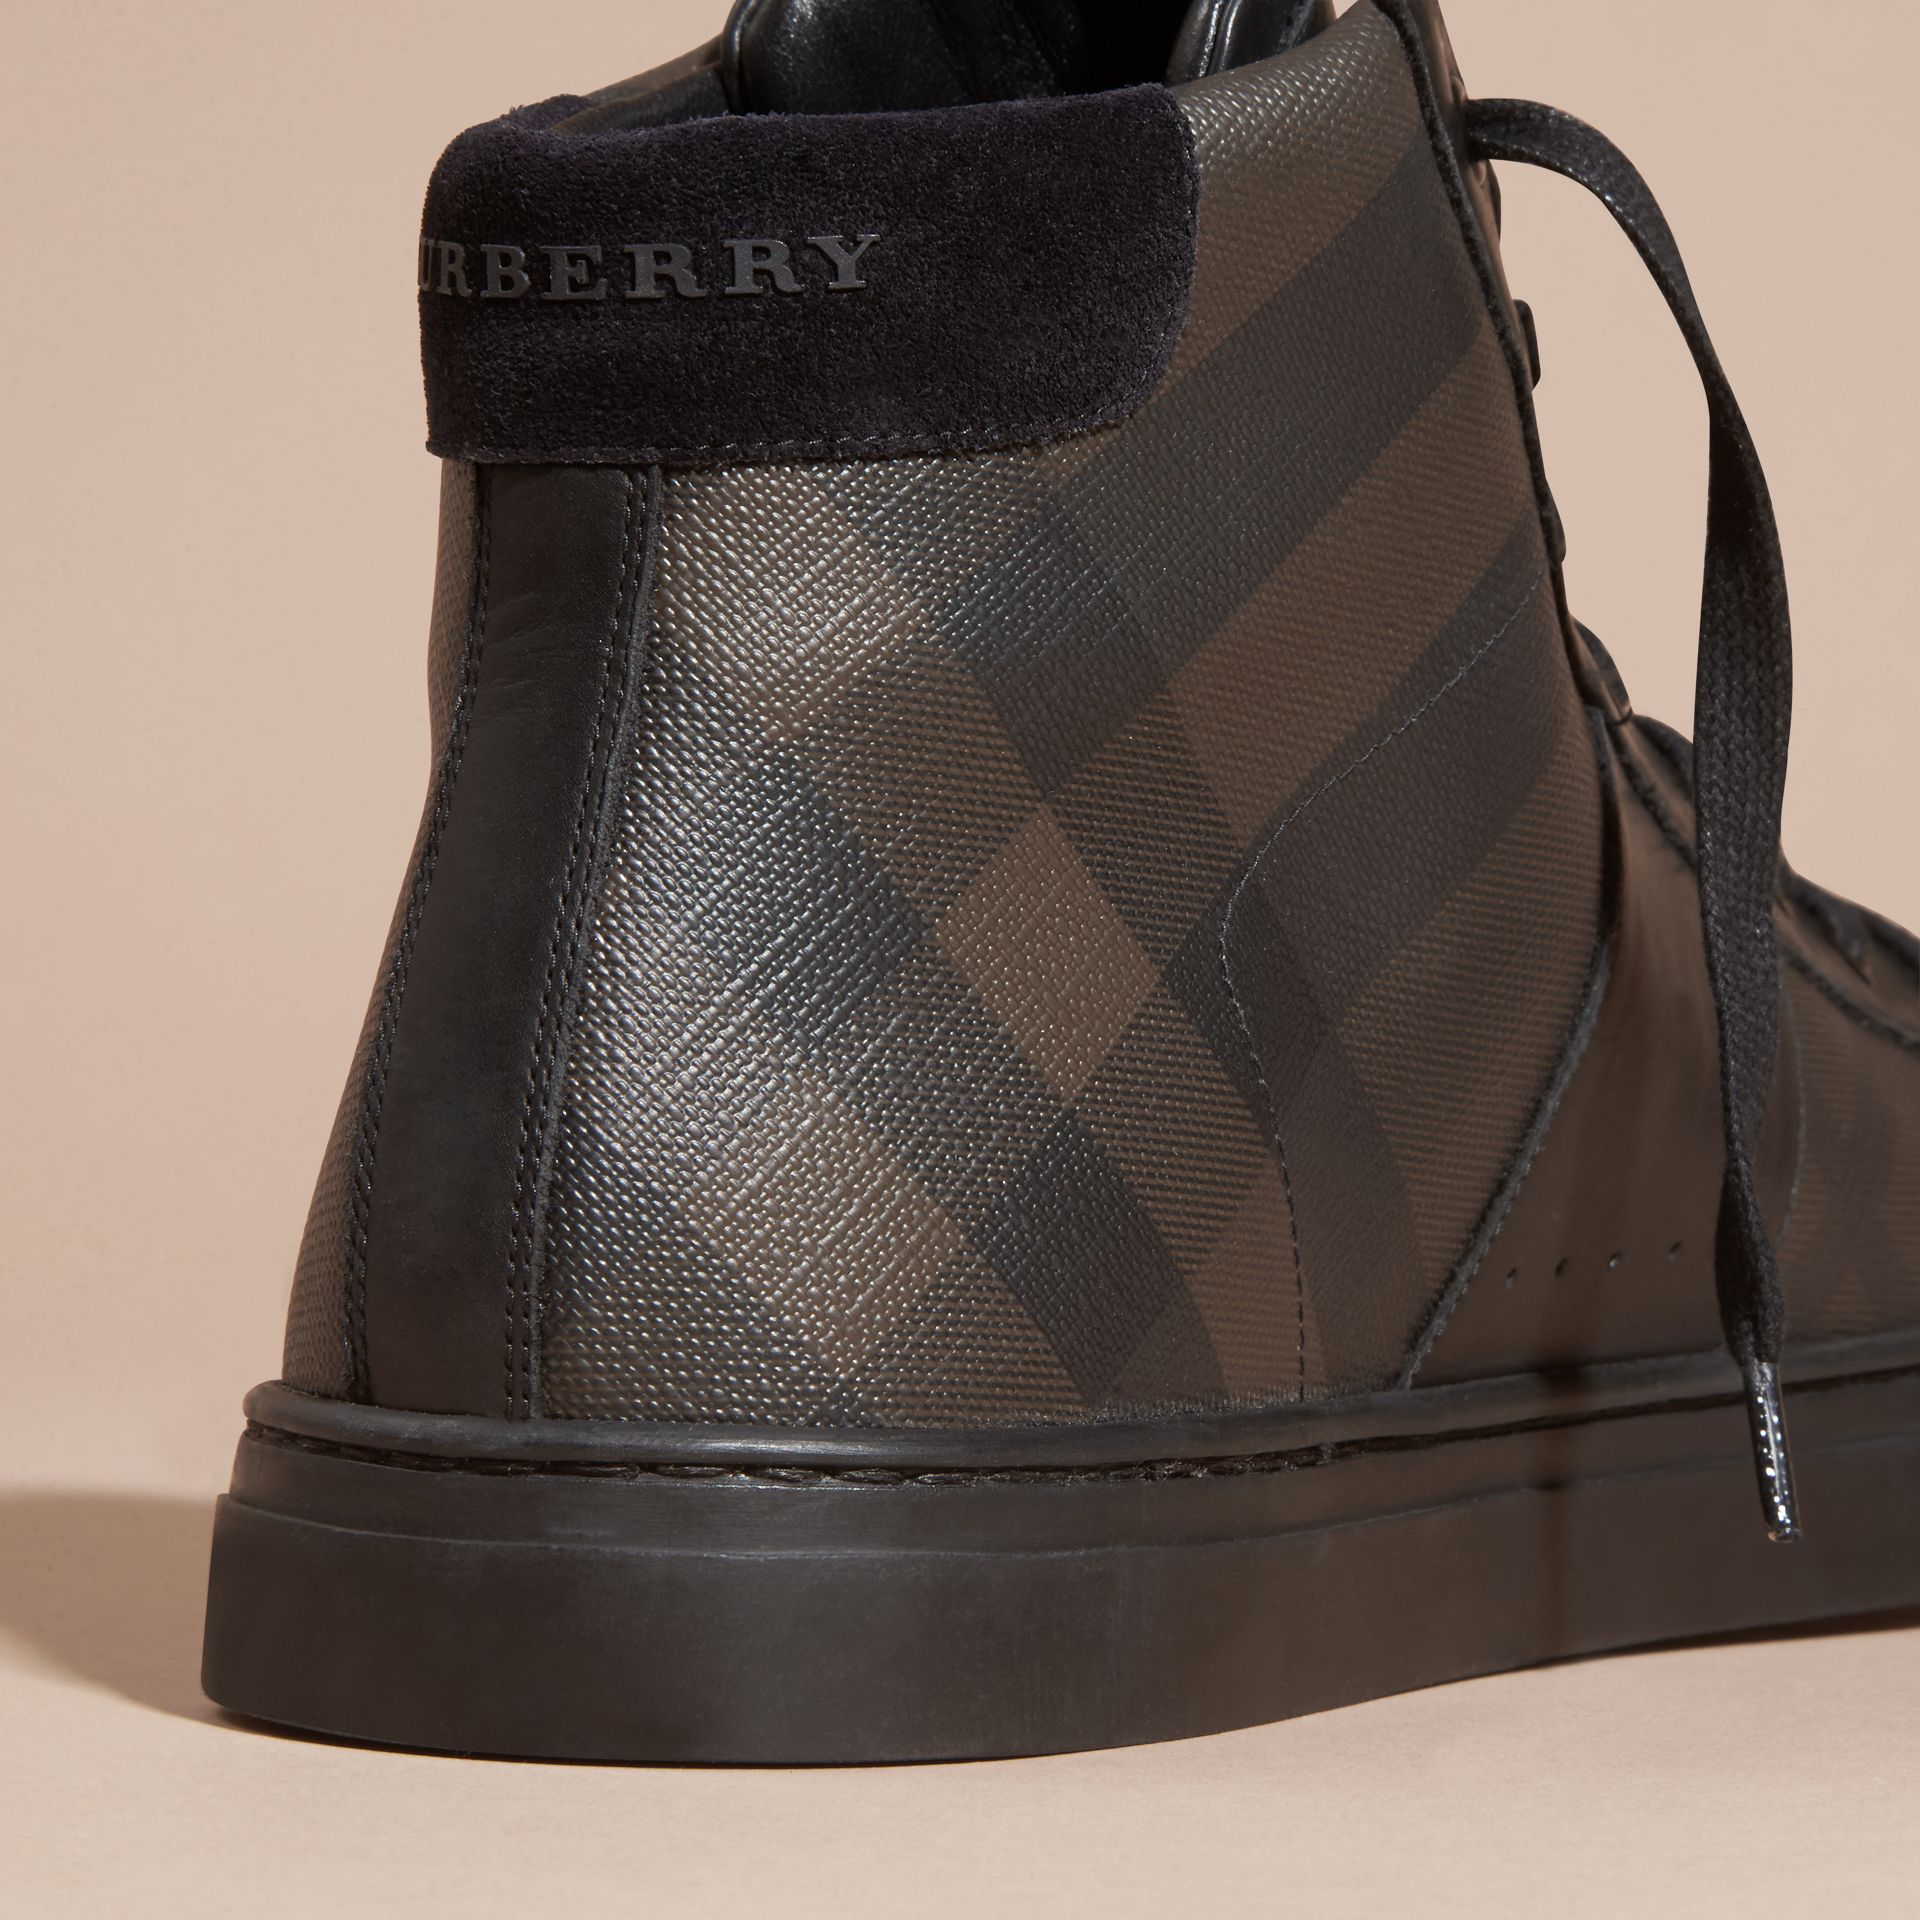 London Check and Leather High-Top Trainers in Smoked Chocolate - Men | Burberry - gallery image 2